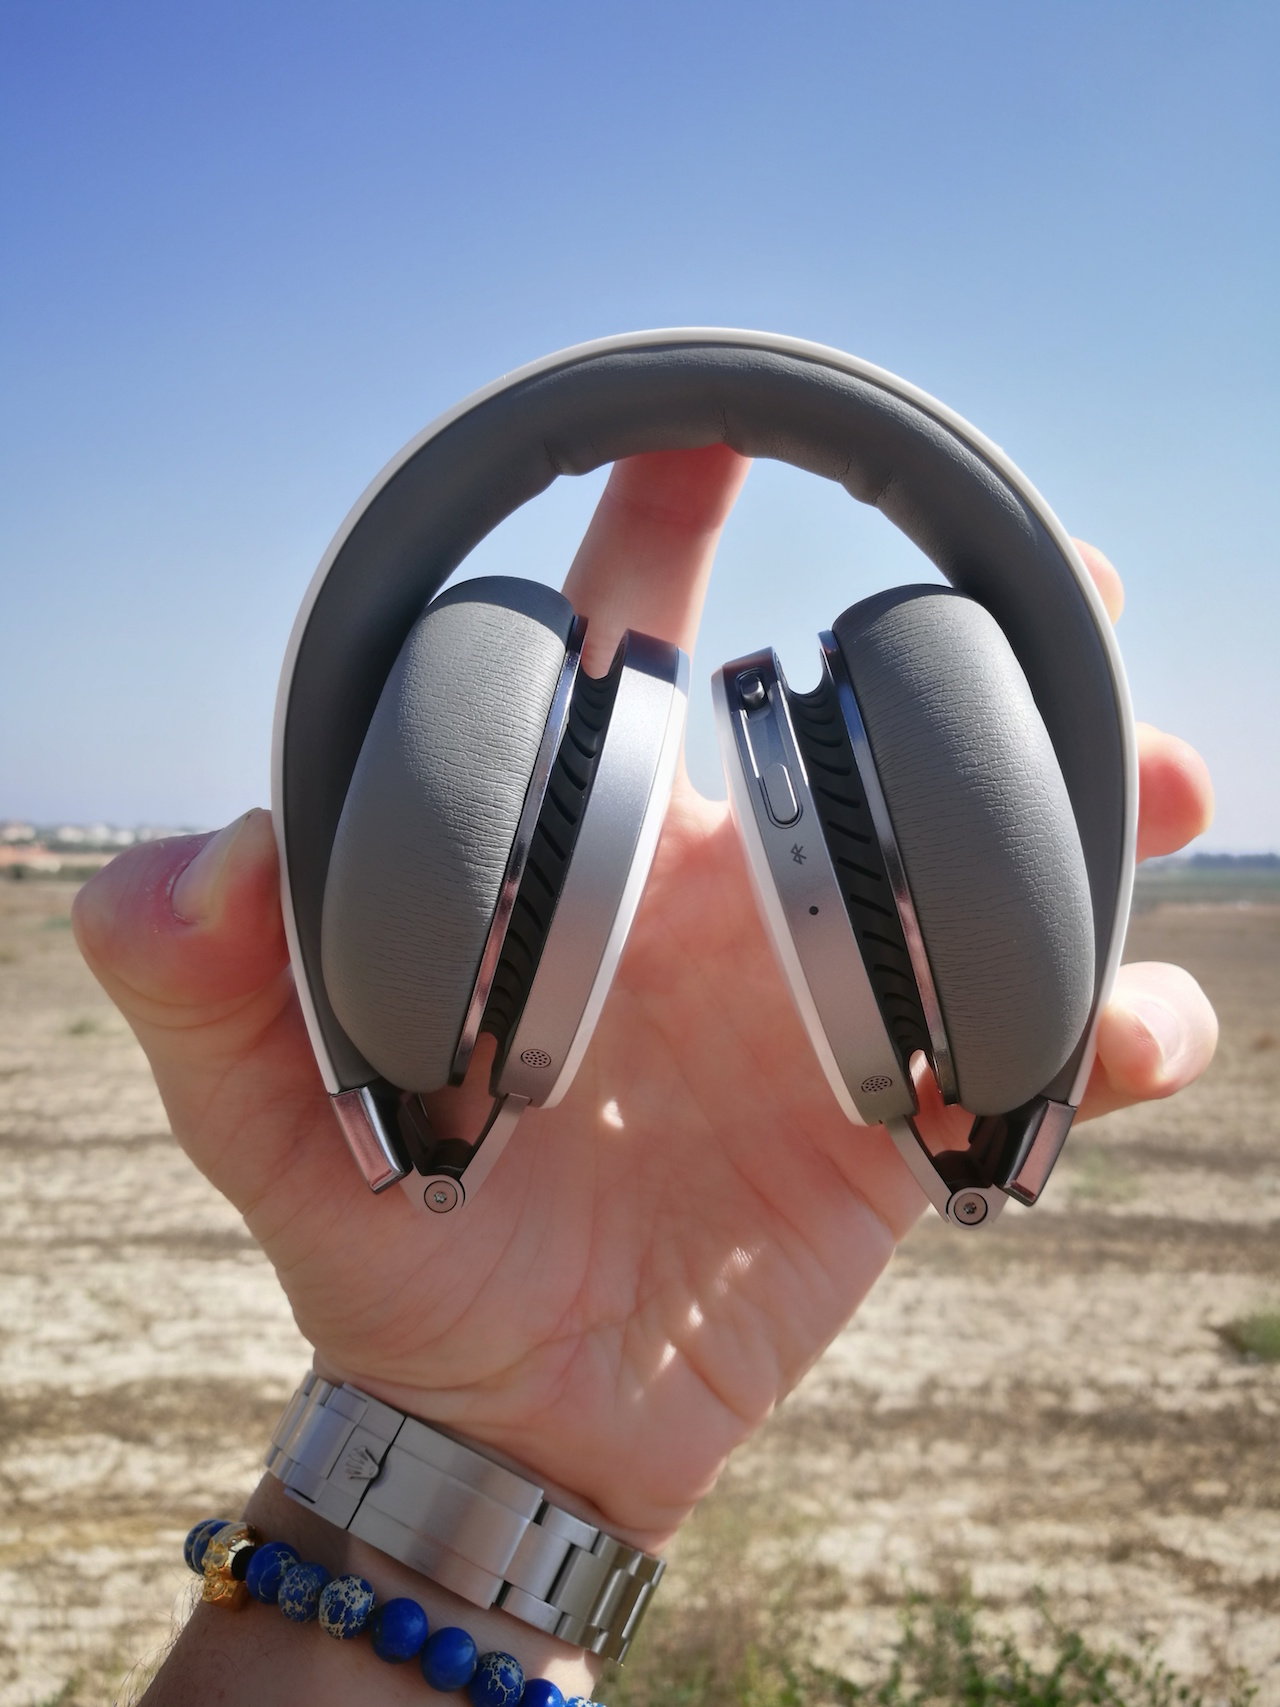 The Diva Pro folds up into an extremely small package. Great for those that use their headphones for traveling or flying.